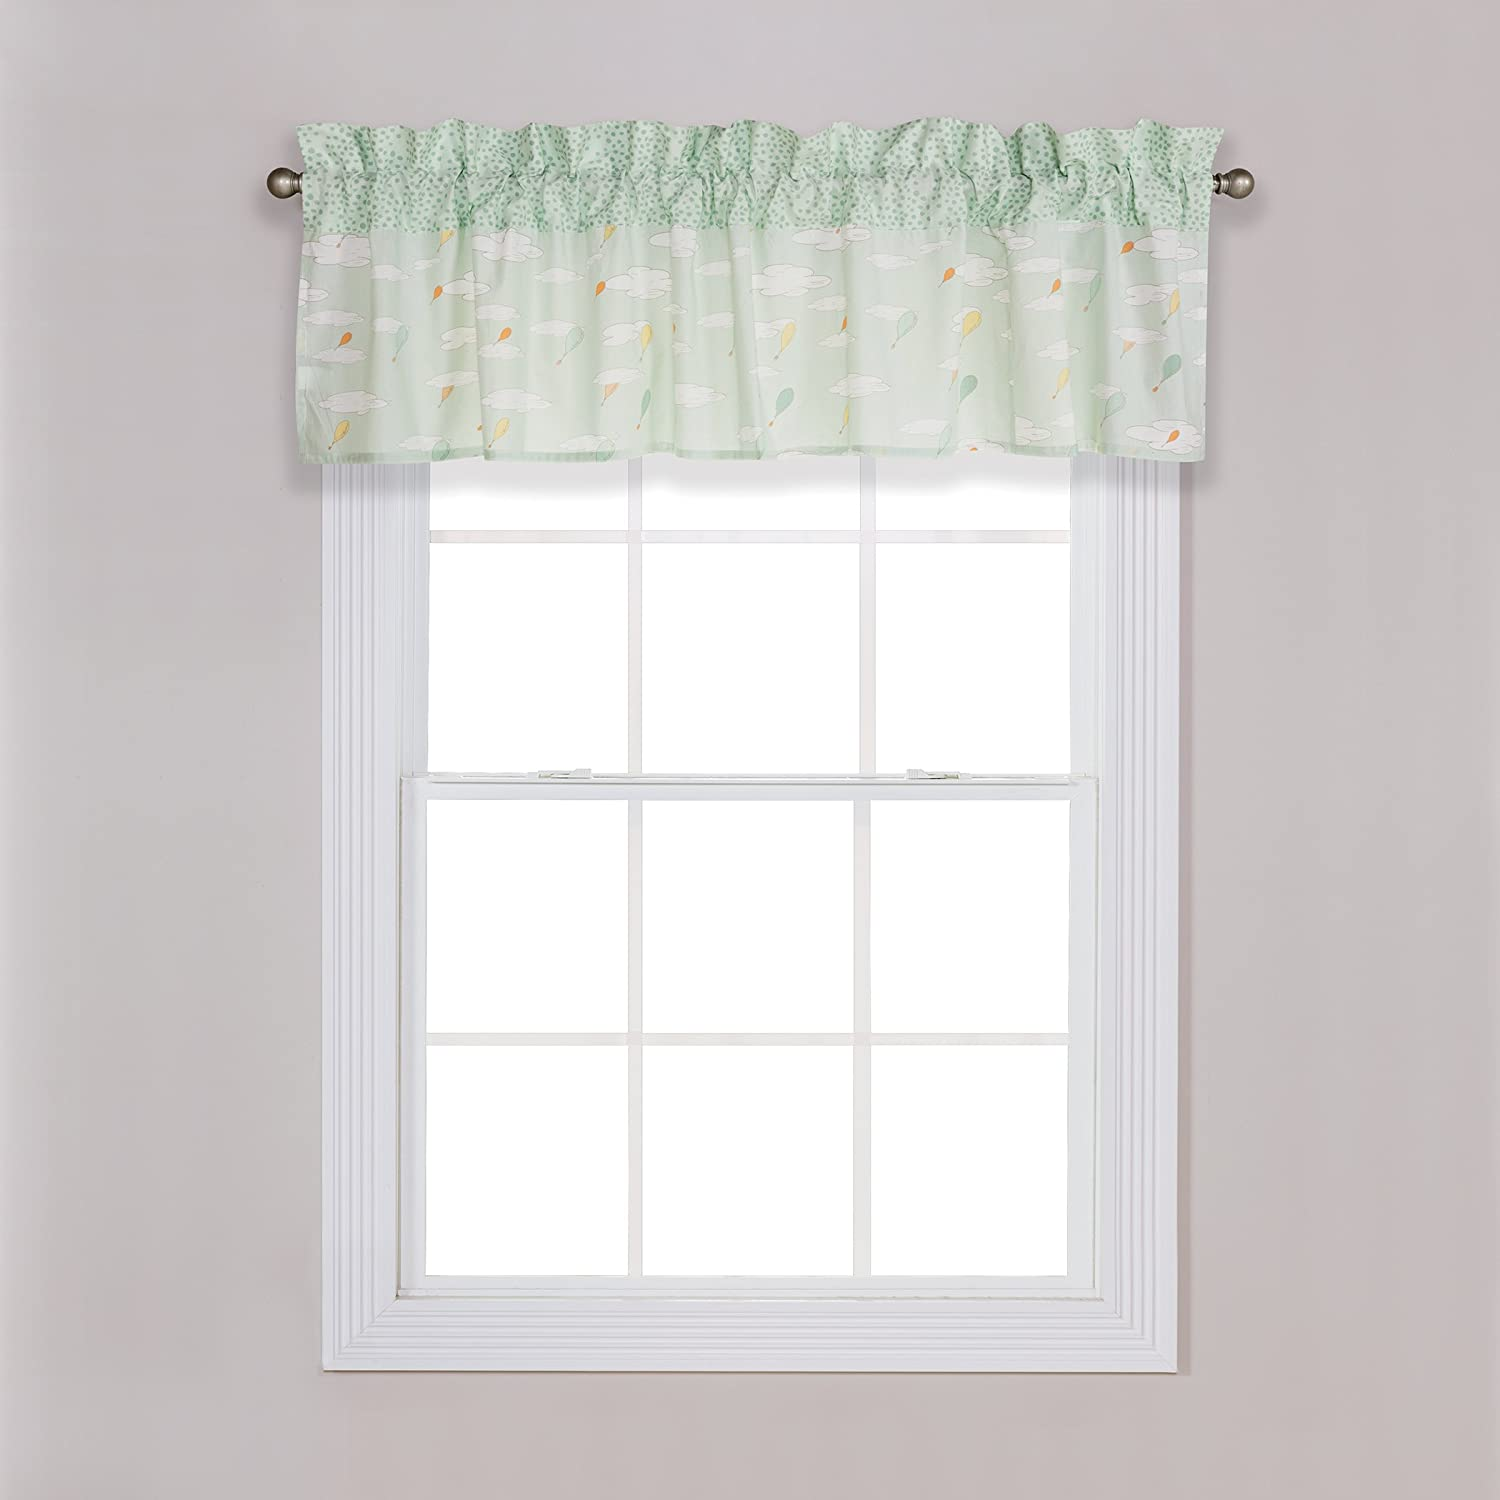 Unisex Window Valance Seuss Oh The Places Youll Go Trend Lab Dr Orange//Yellow//Green and White 30368